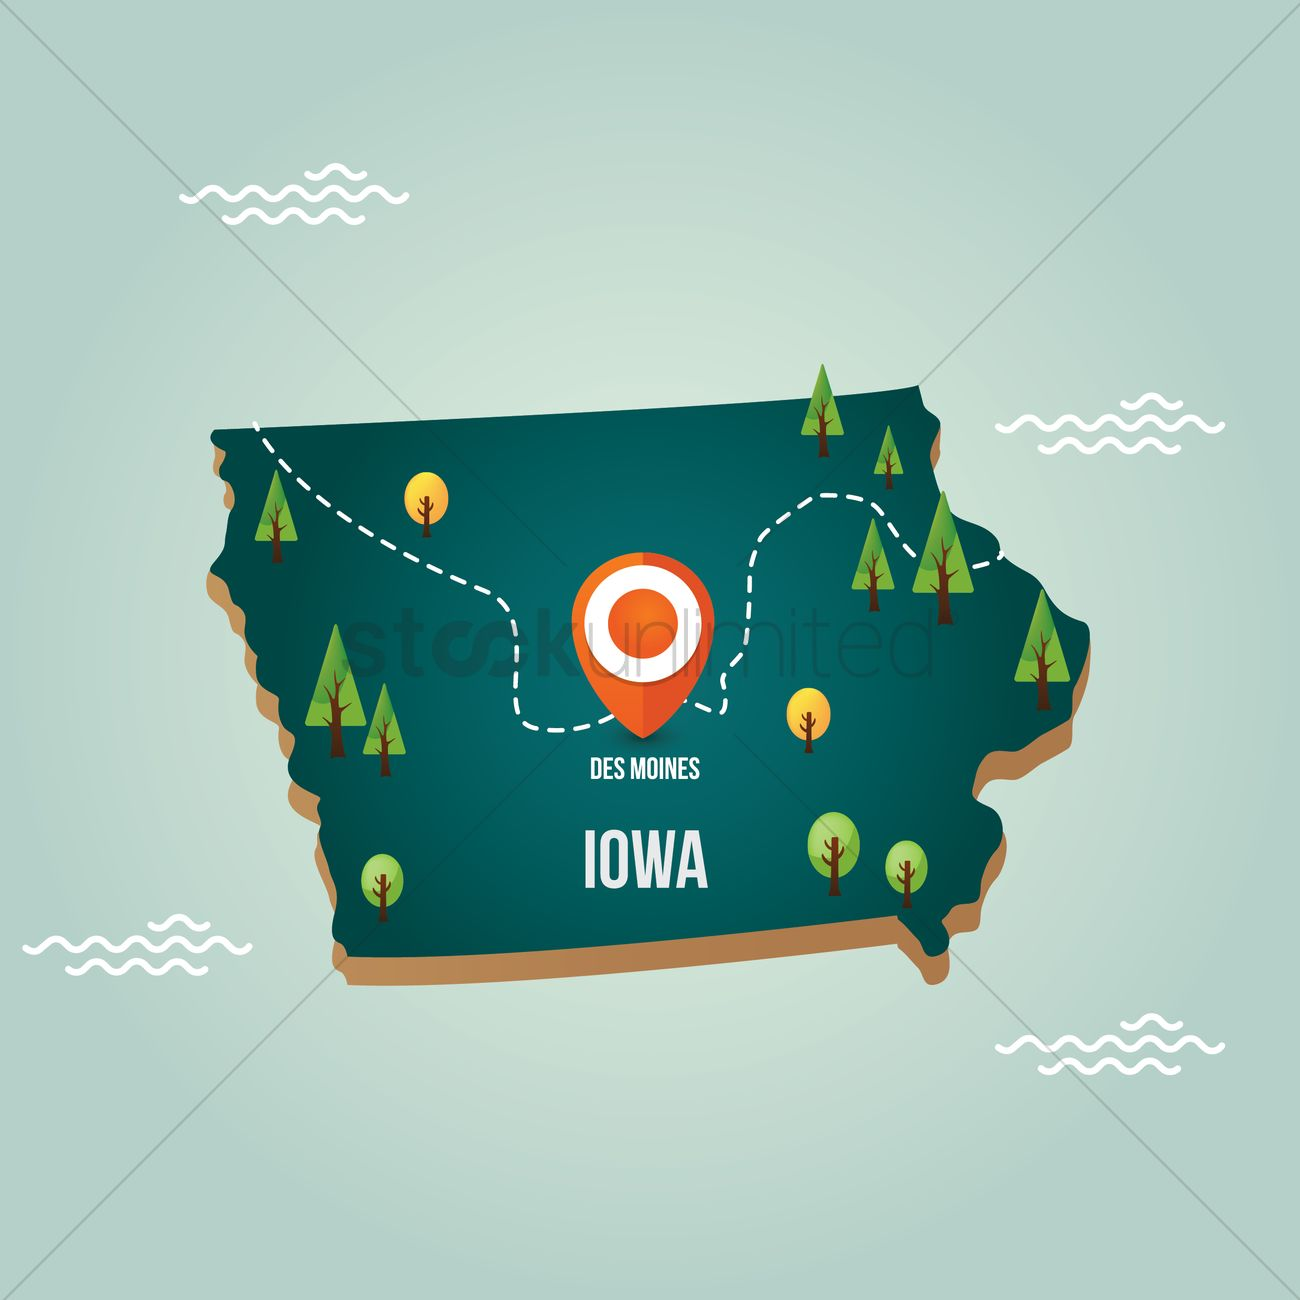 FileIowaUSAstatespng Wikimedia Commons United States Map Iowa - Iowa usa map